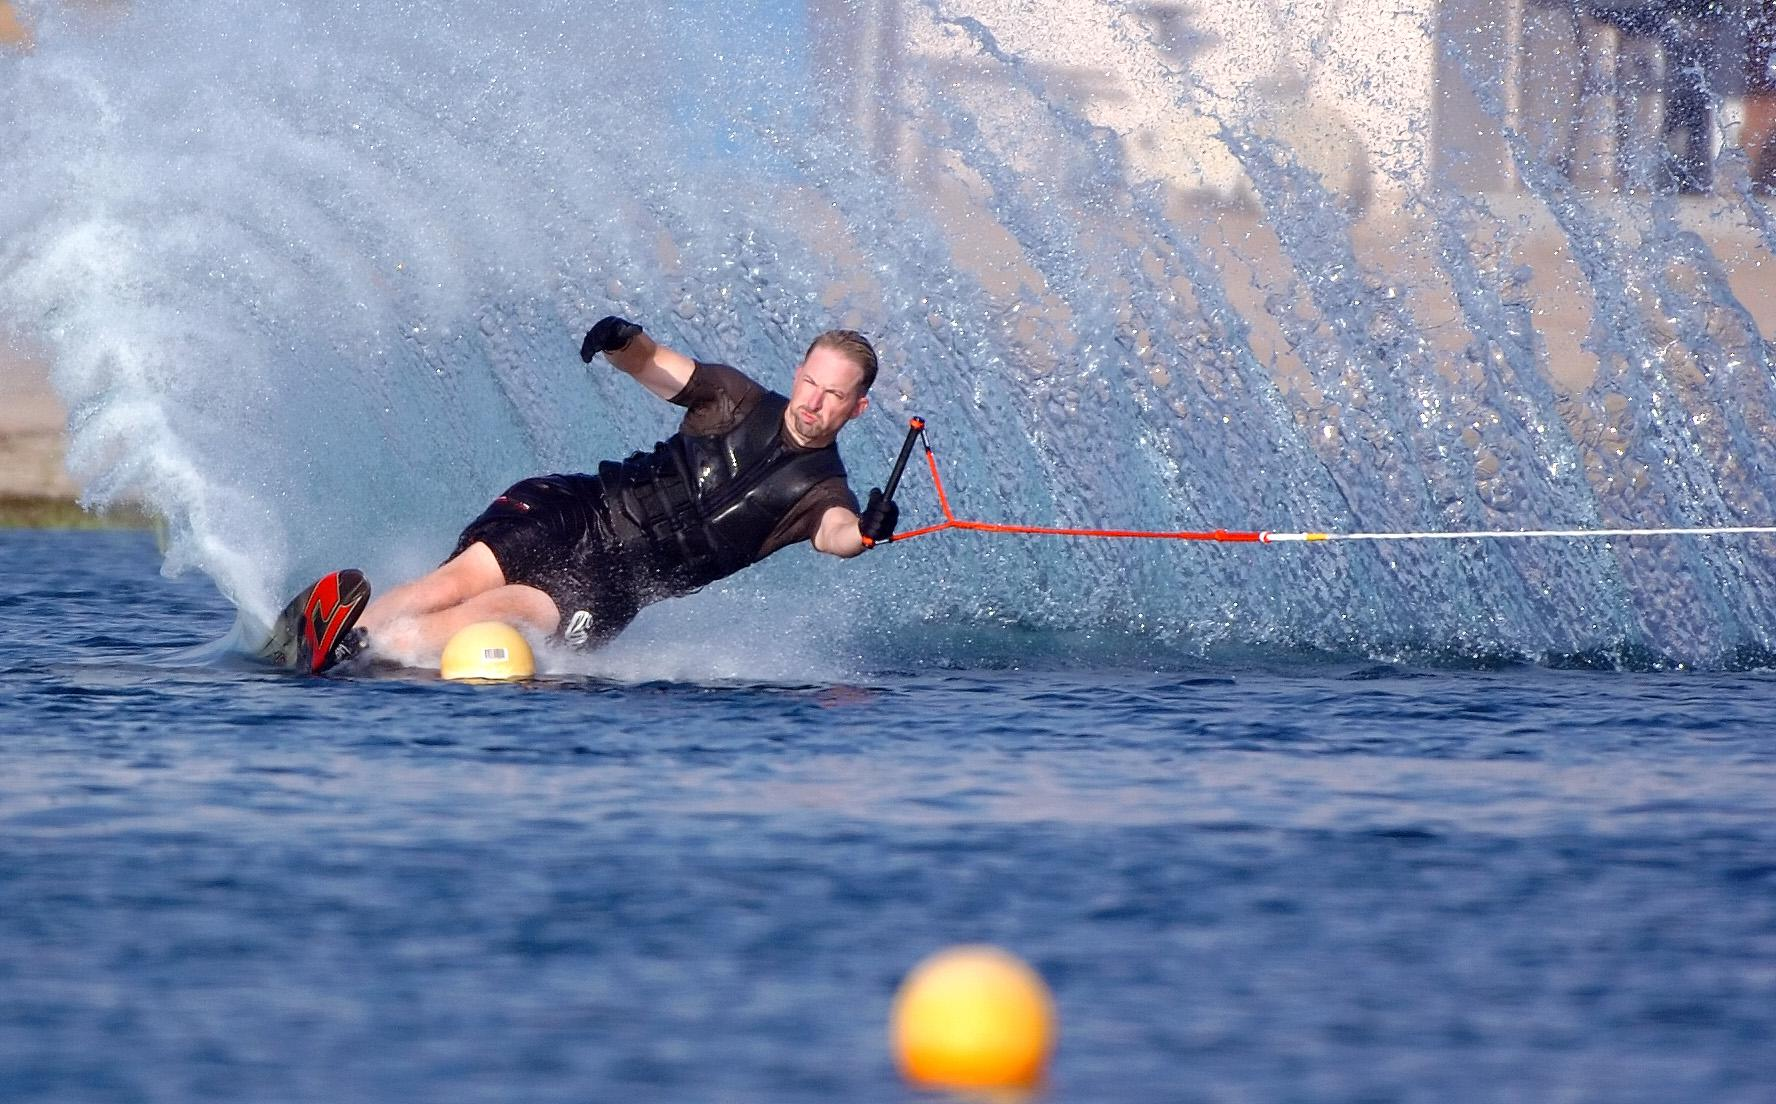 Best Water Skis For Beginners